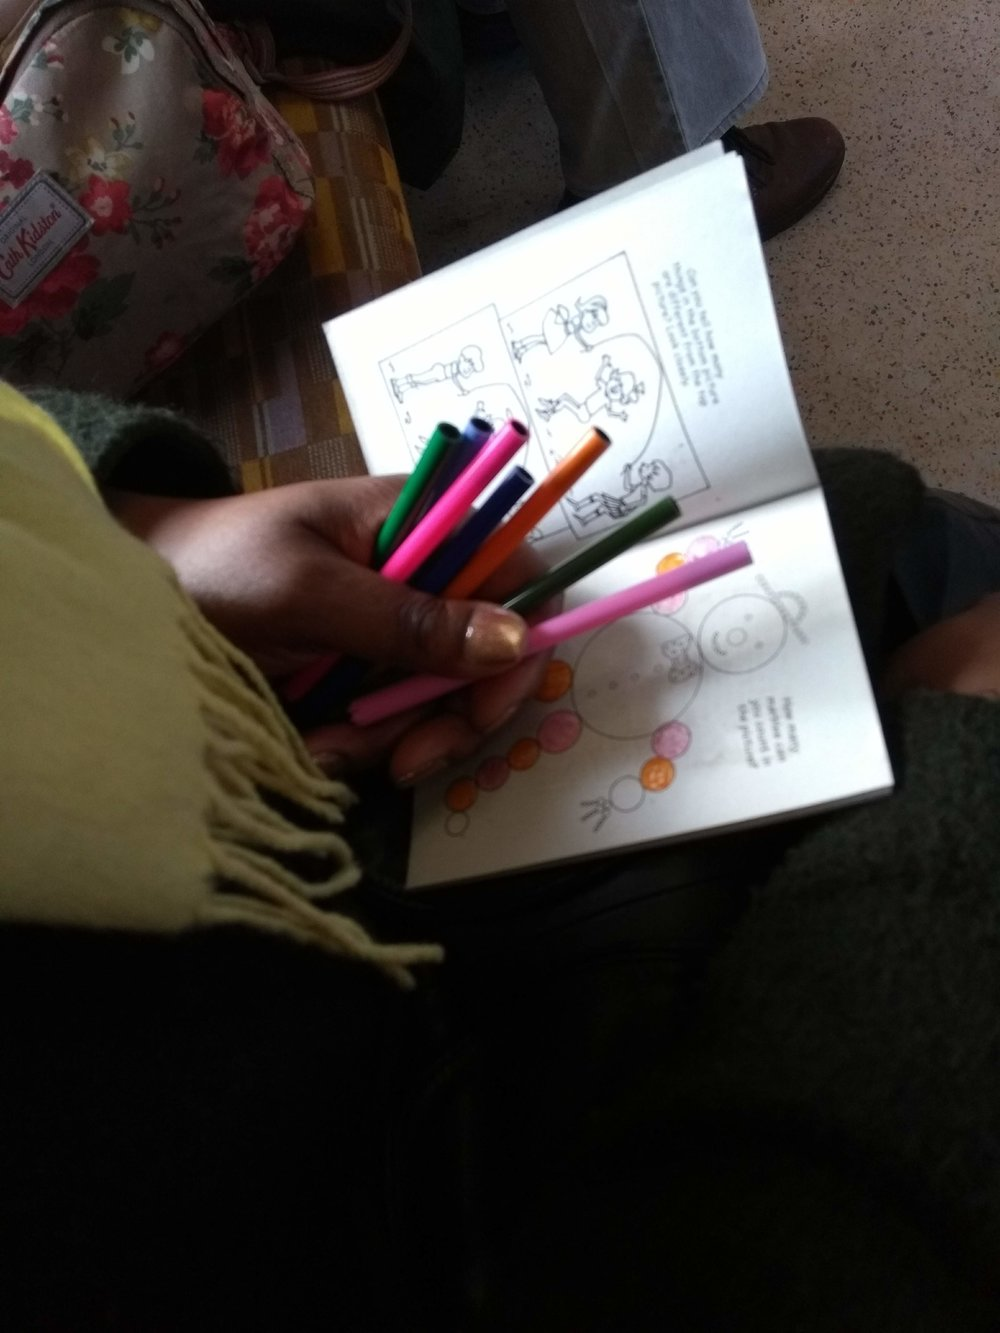 Colouring in can help lower stress levels on a commute